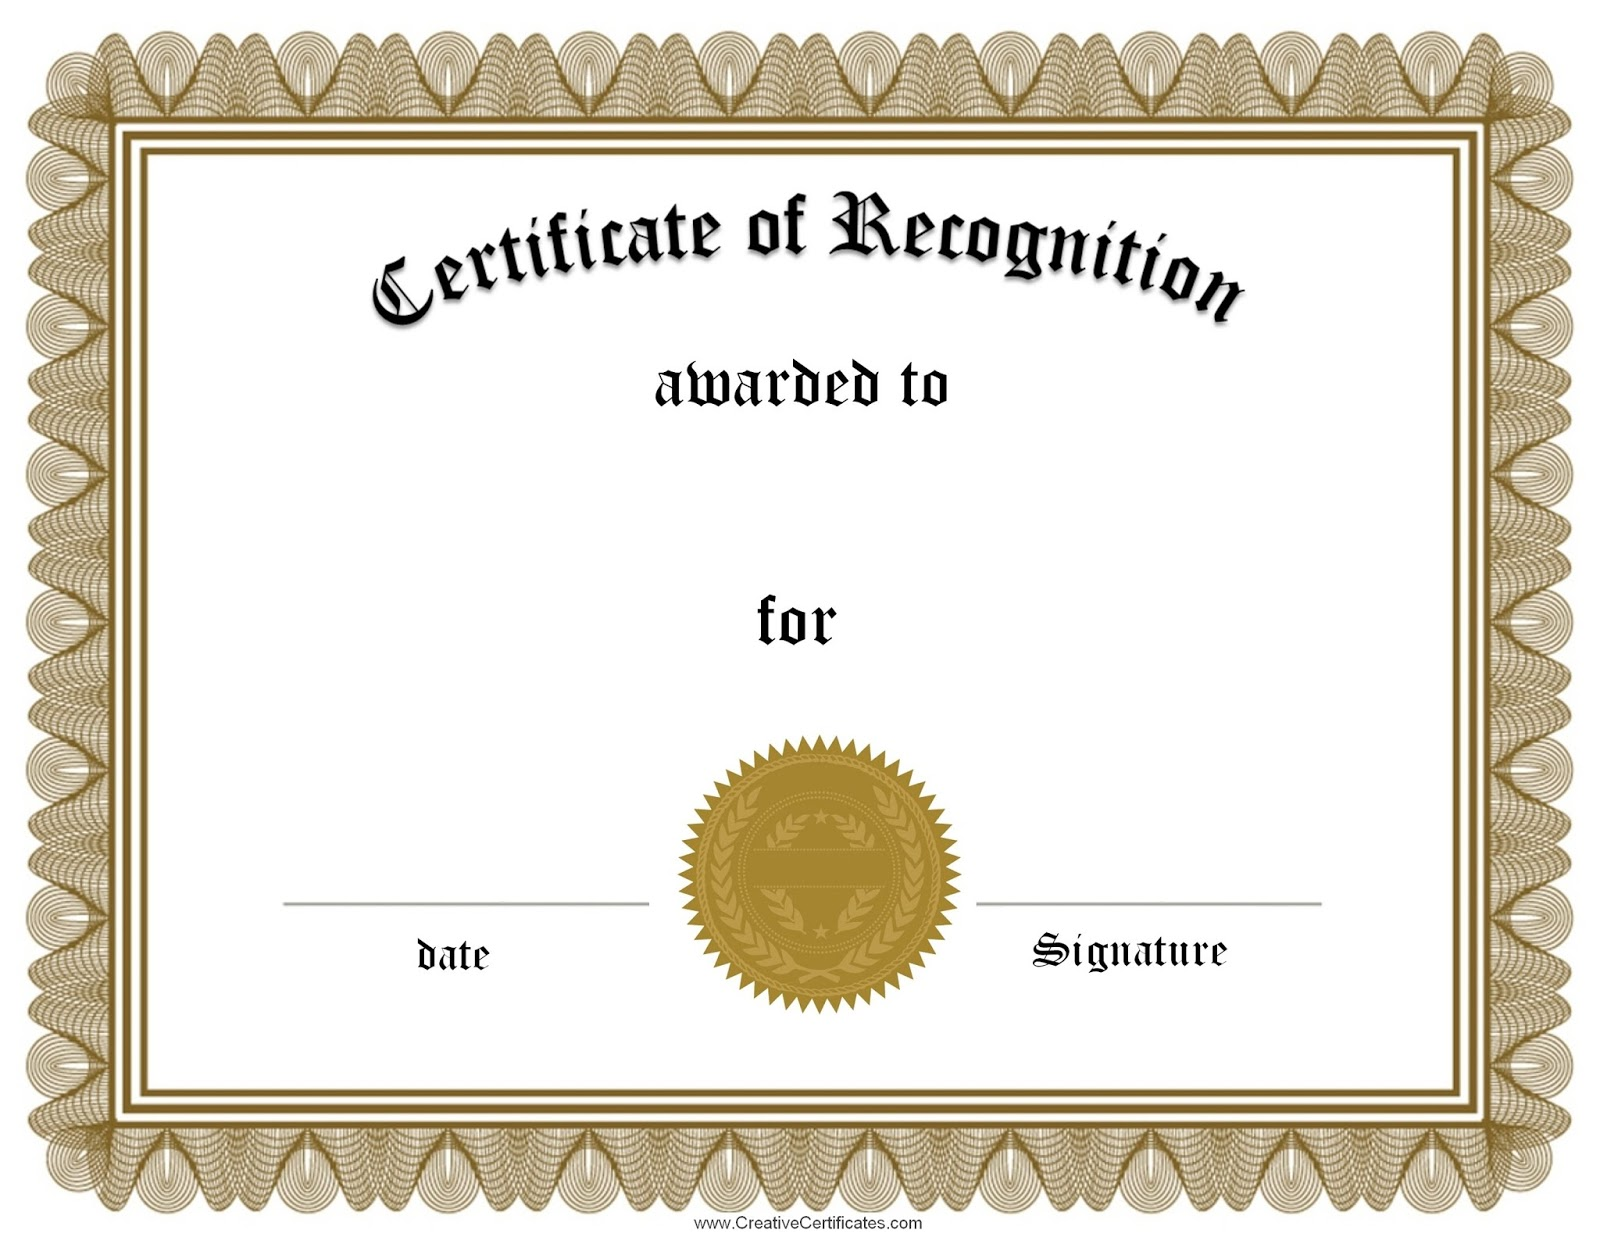 Employee recognition award certificate template d templates employee recognition award certificate template yadclub Images